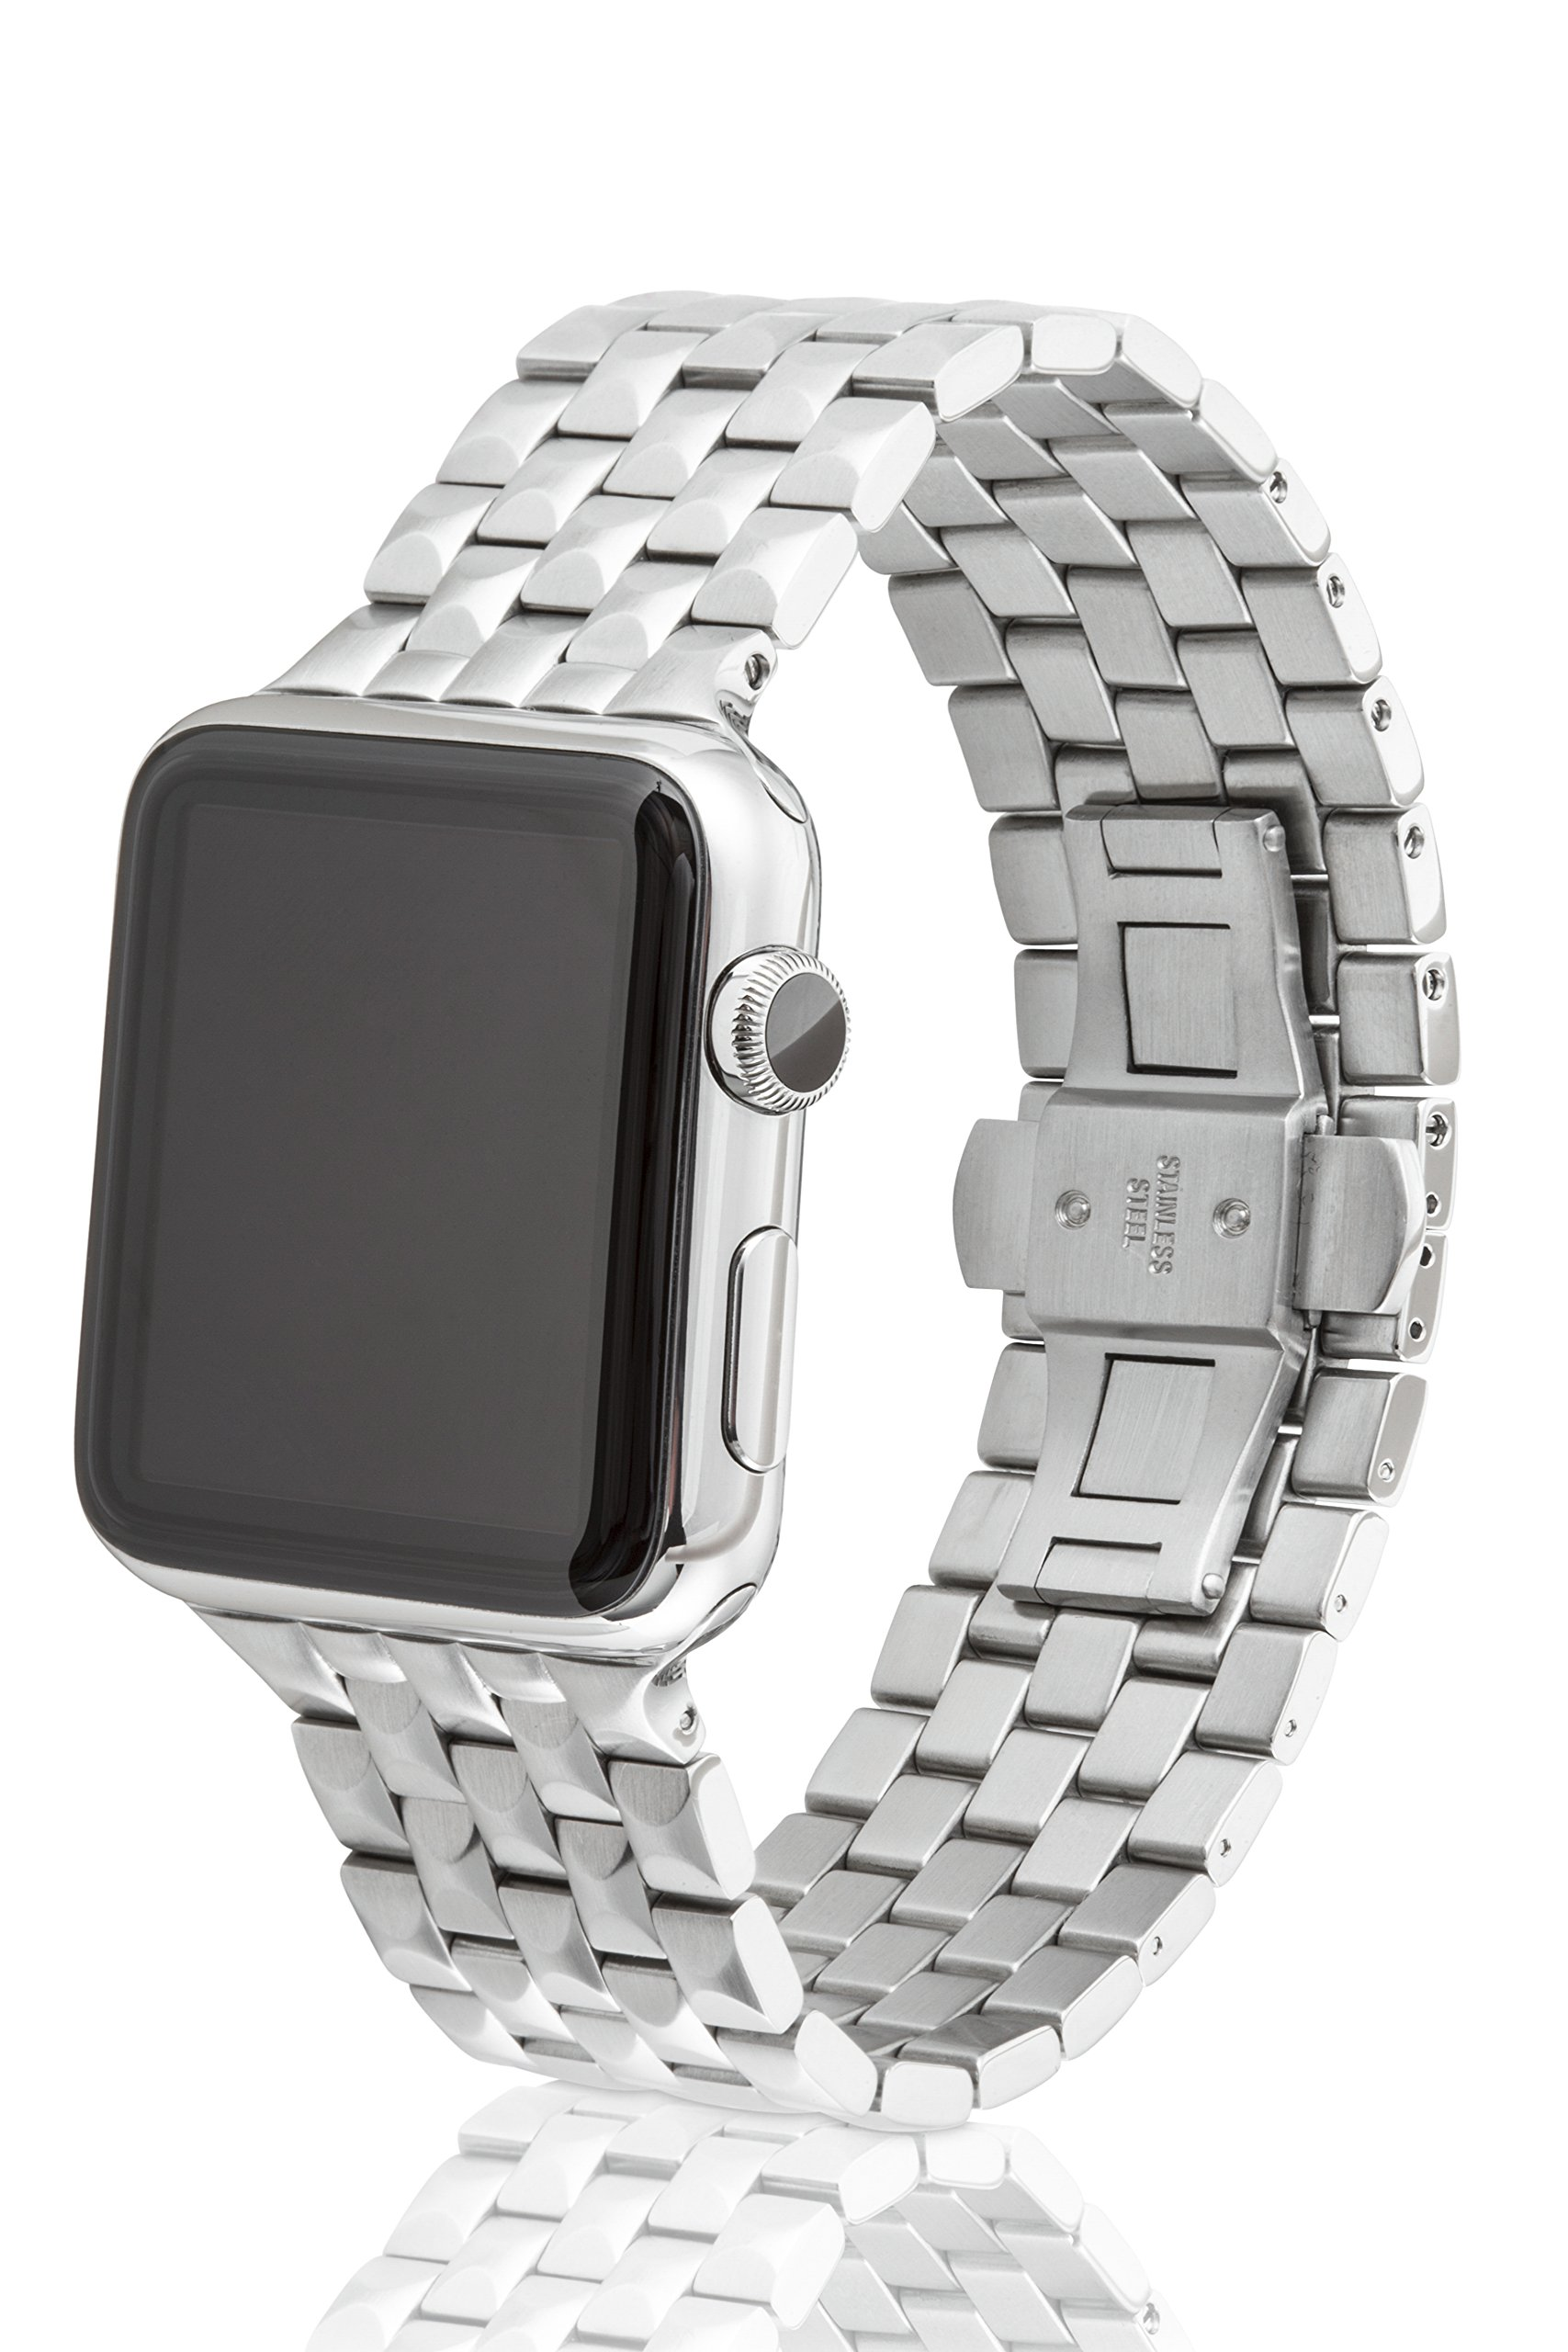 42mm JUUK Locarno Premium Apple Watch band, made with Swiss quality using only the highest grade solid 316L stainless steel with a solid steel butterfly deployant buckle (Brushed)